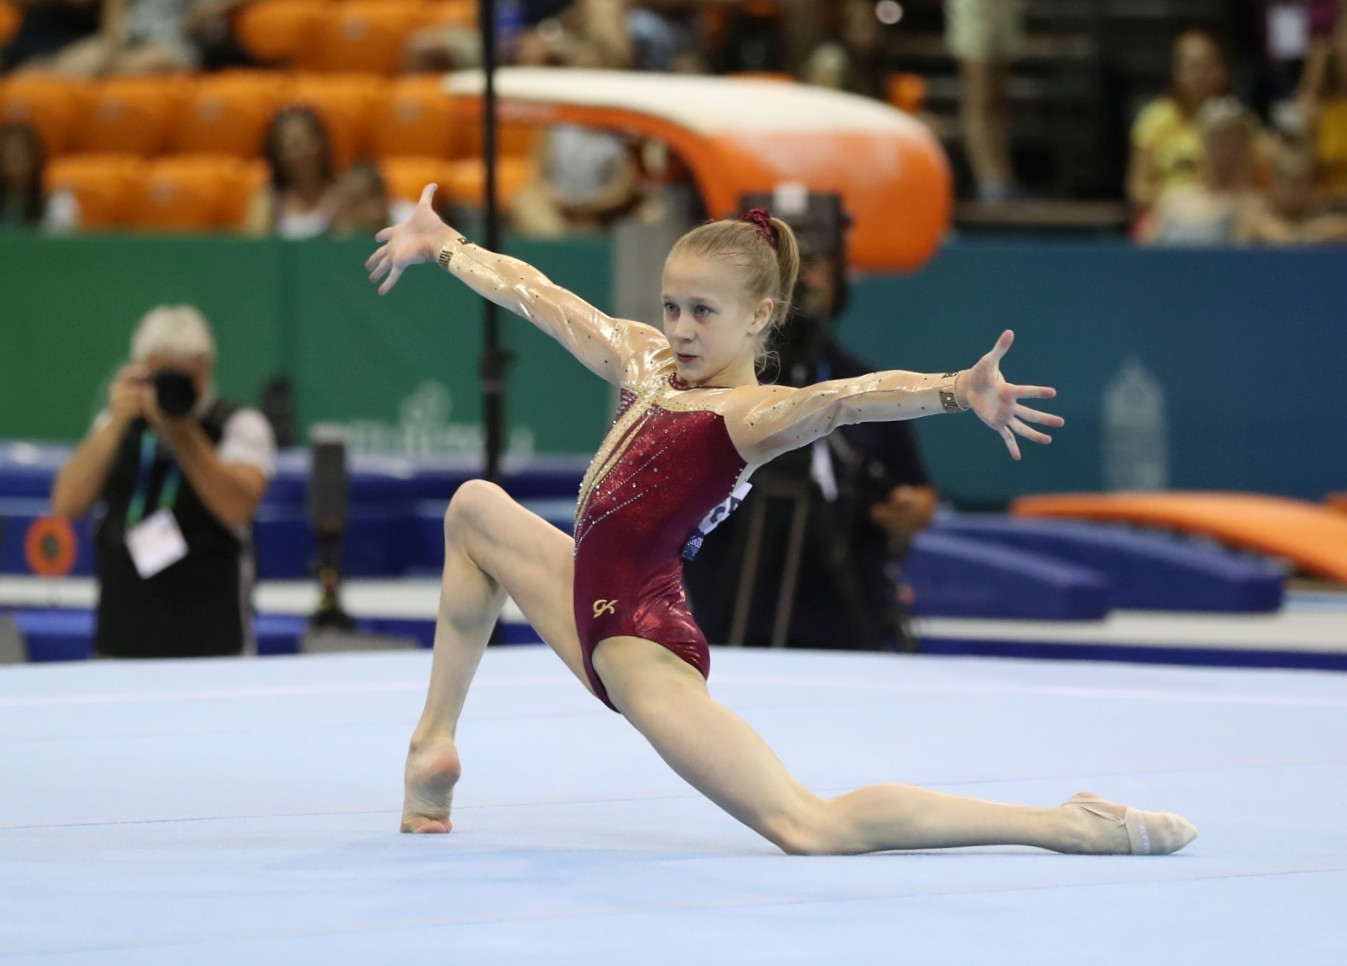 World junior gymnastics champion Listunova hopeful of competing at first Olympics in Tokyo after age limit lowered